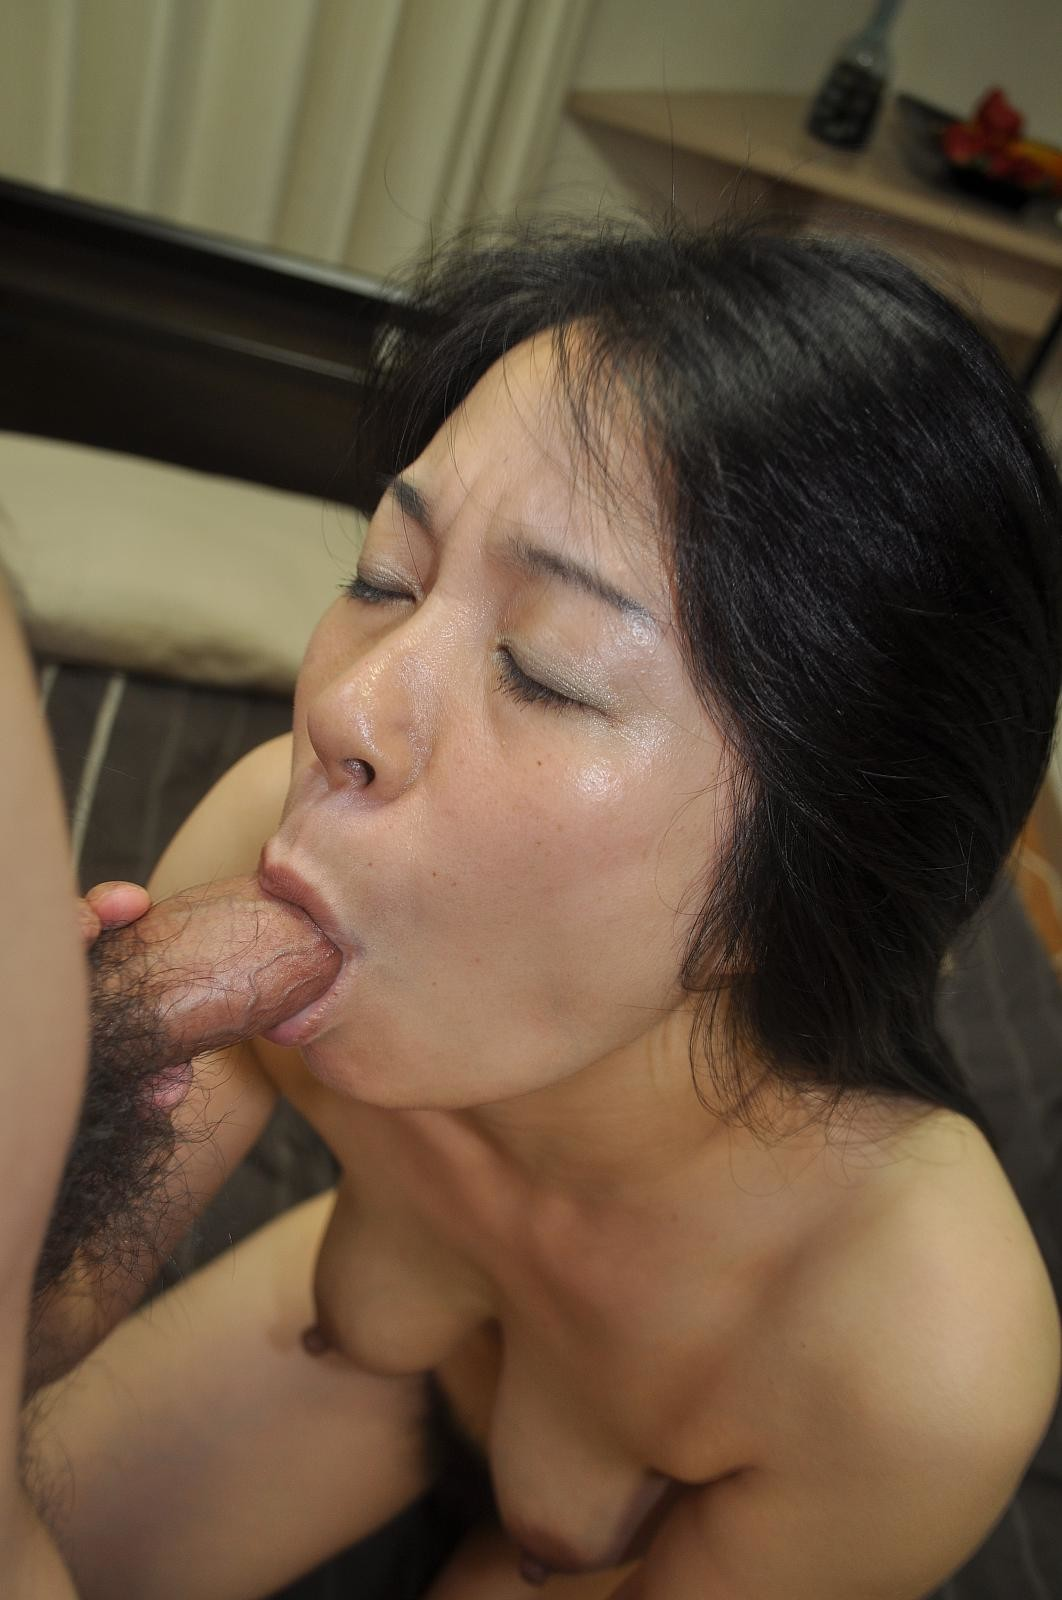 fucks teacher japanese mom have to fuck all members of family asian sweet